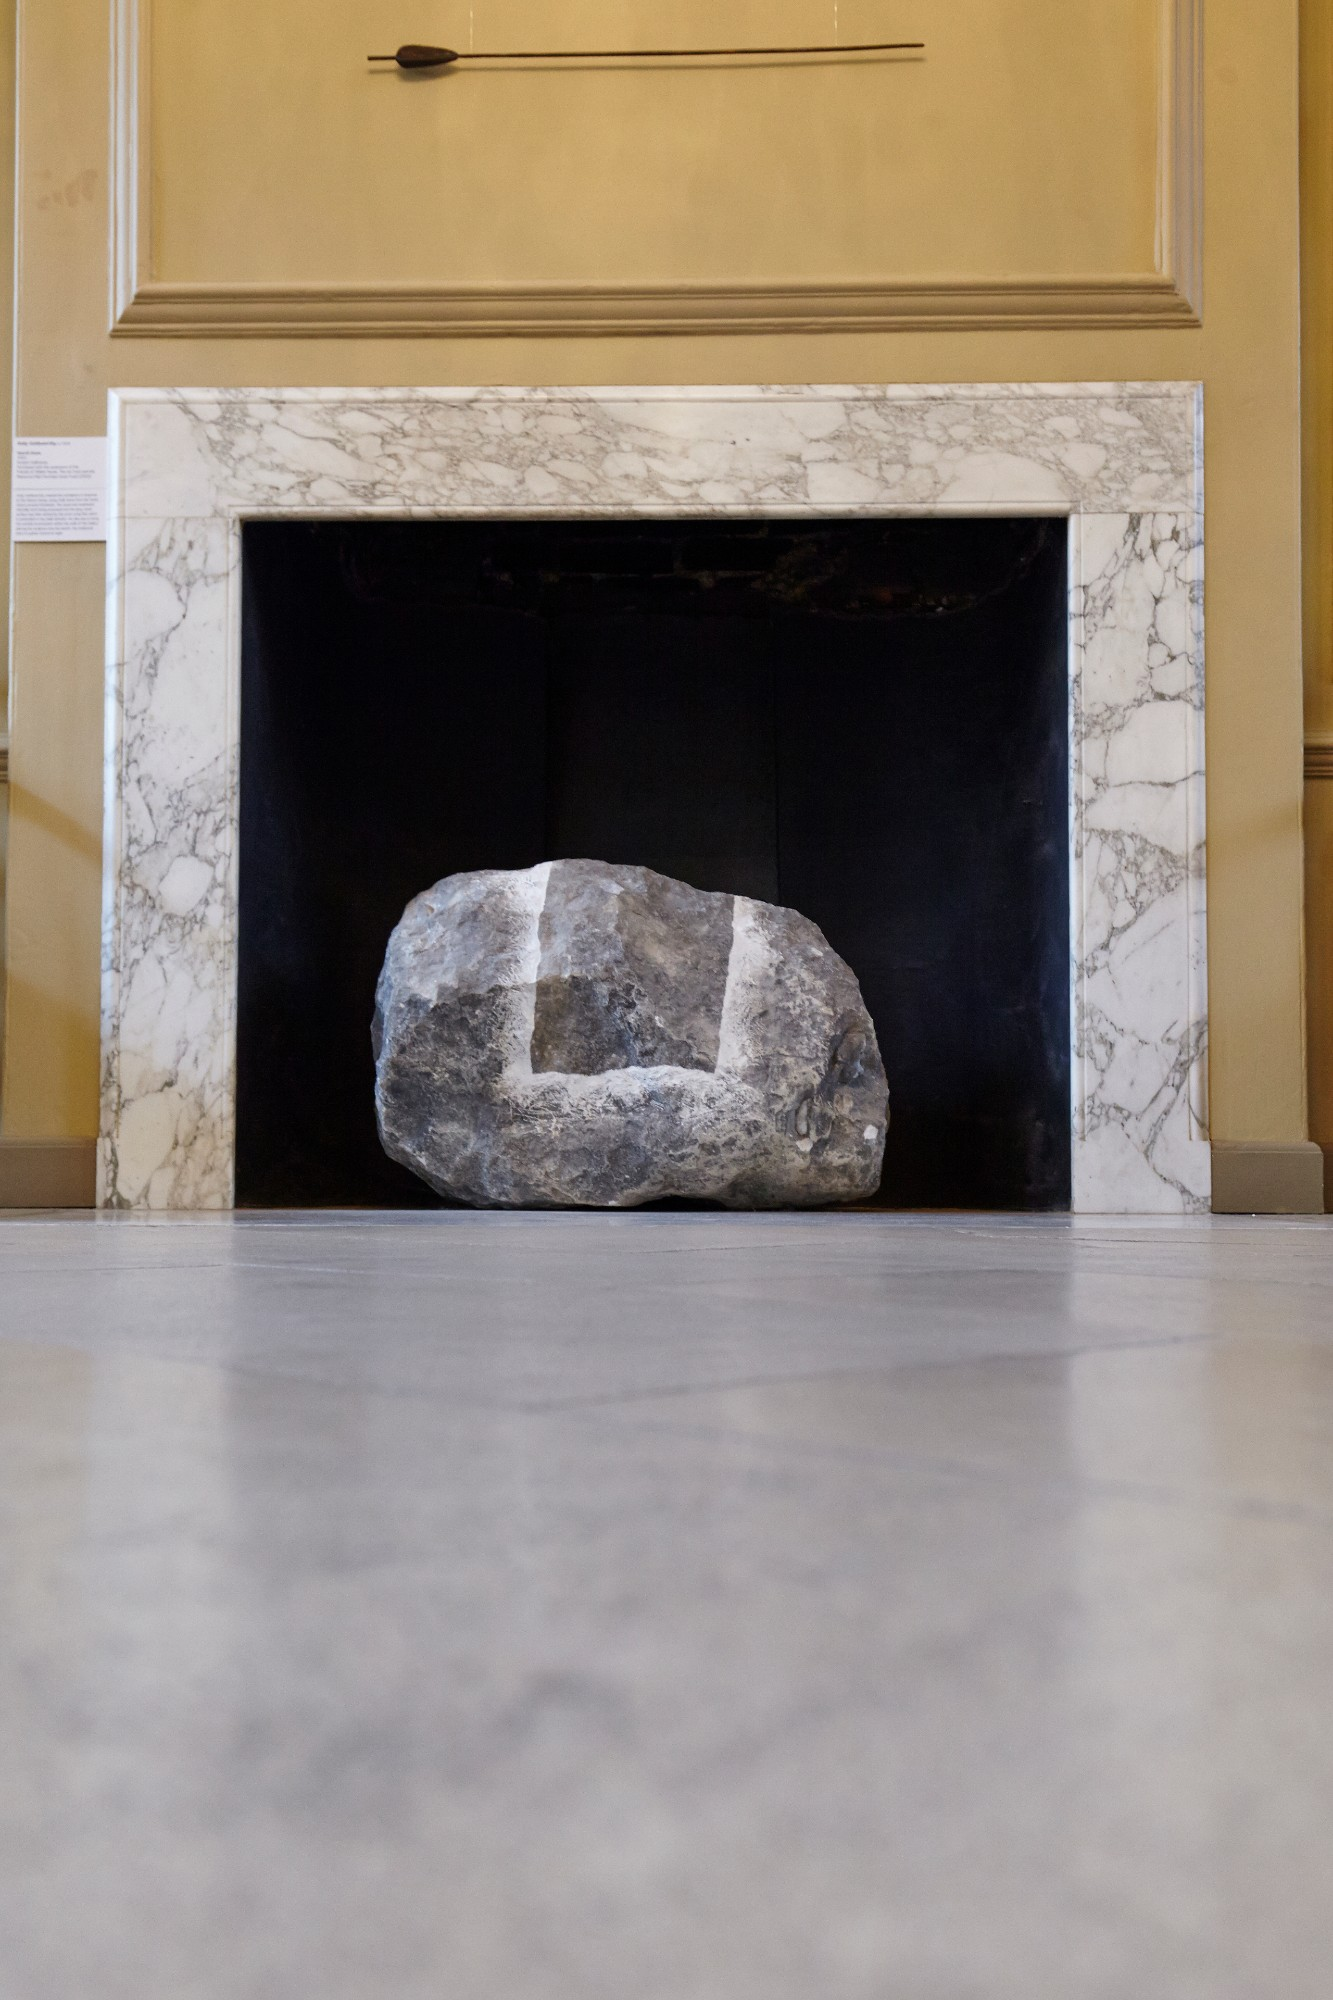 A large chalk stone incised with a square outline sitting in a period fireplace.